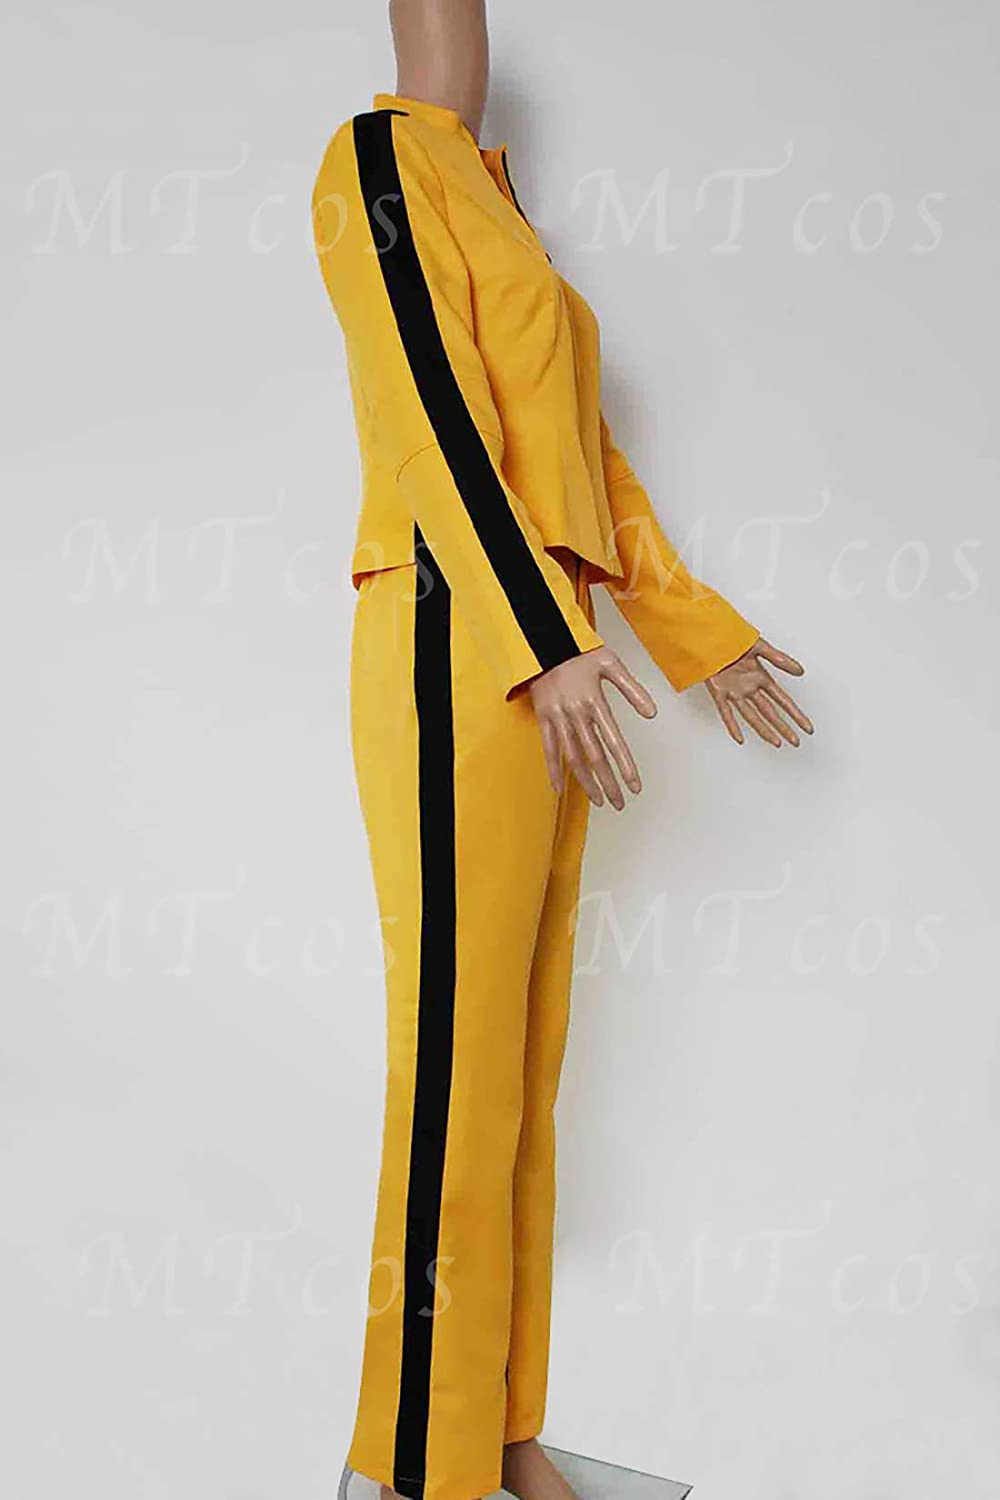 DEREN Kill Bill Cosplay The Bride Beatrix Michelle Kiddo - Abrigo ...